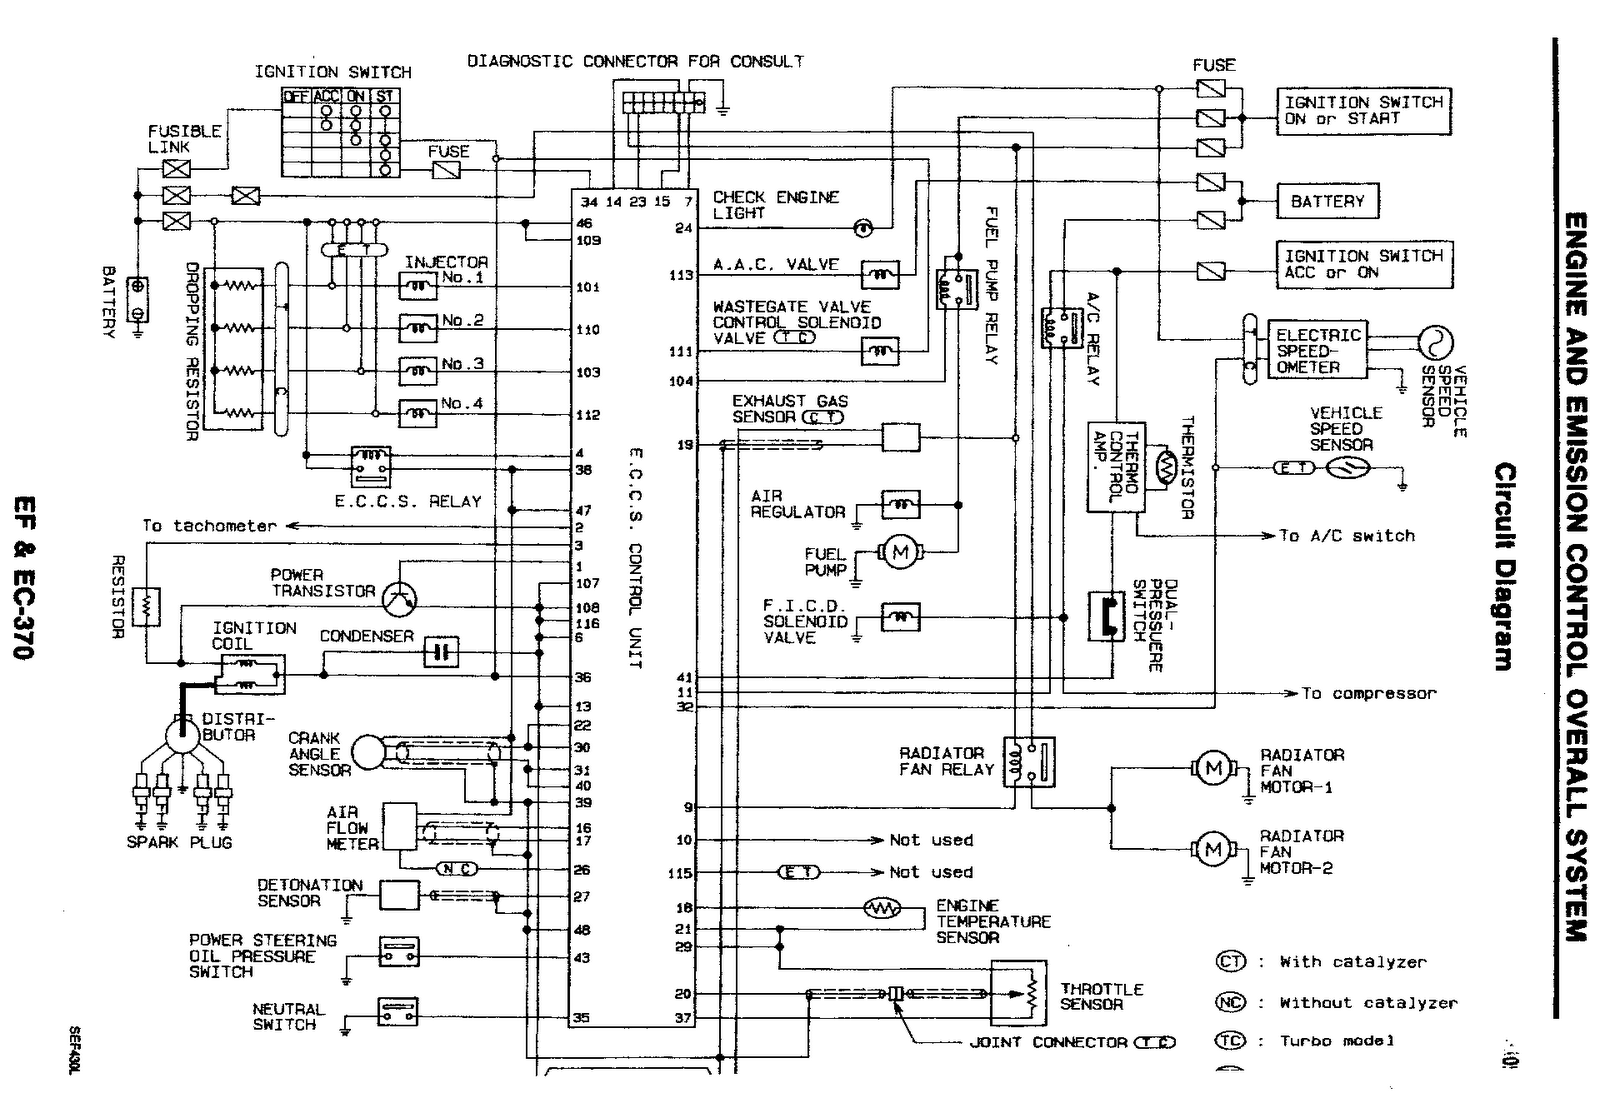 [DIAGRAM_38IS]  FF9 1998 Audi A4 Fuse Box | Wiring Library | Wiring Diagram Radio 98 Audi A4 Quattro |  | Wiring Library